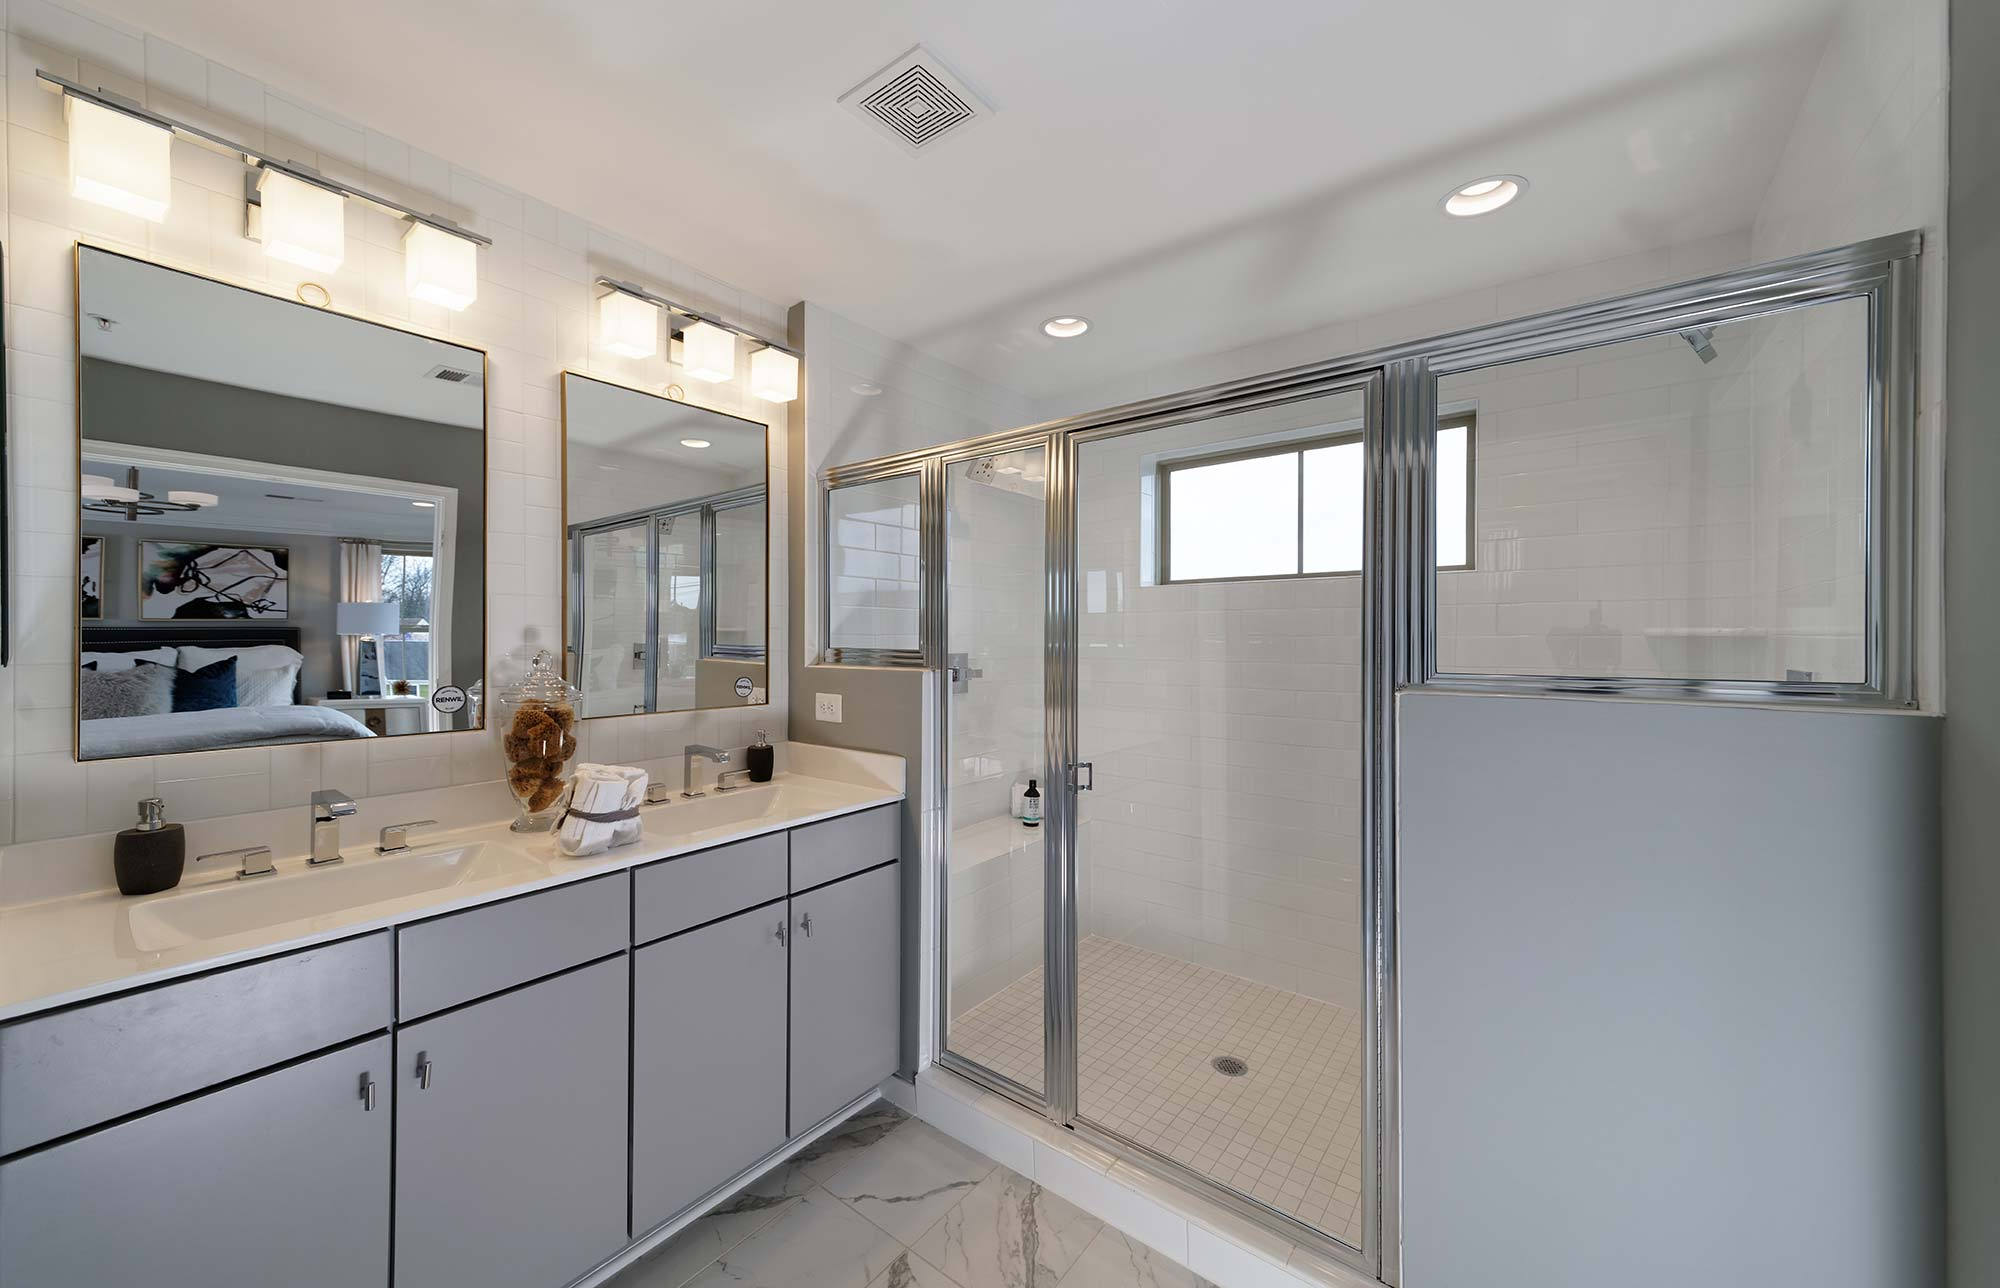 Bathroom, Townhomes, Germantown MD